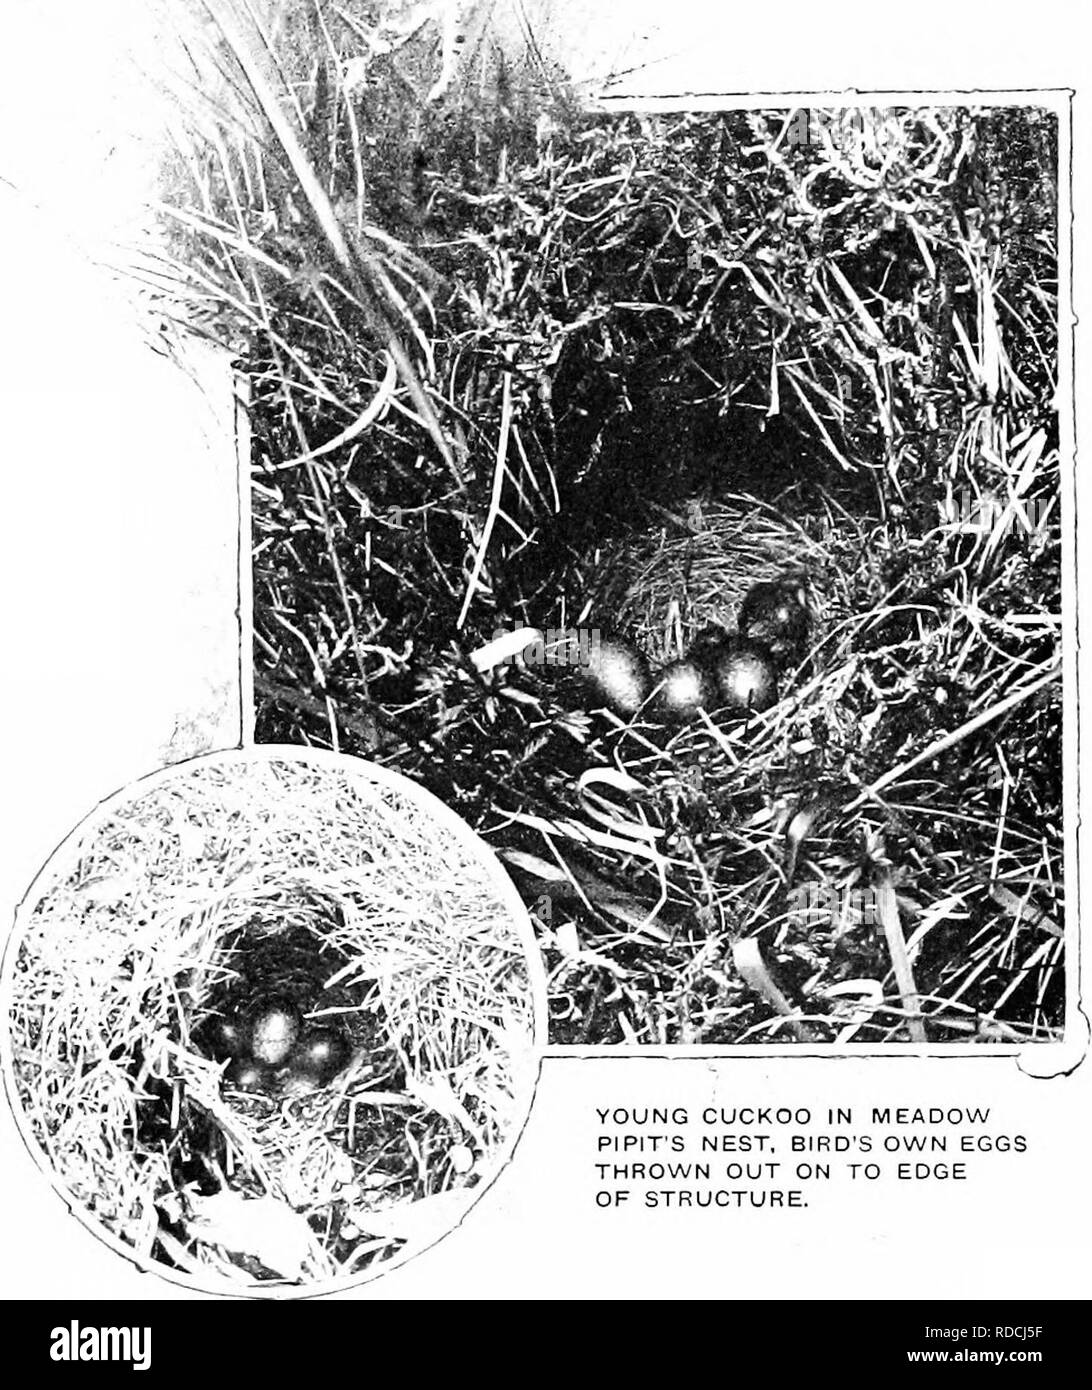 . Nature's carol singers. Birds. THE CUCKOO. to lay, watched the nest of some small bird until the owner left it in search of food, when she stealthily sat down and dropped one of her own eggs into the structure. Unfortunately for this theory, -it would ..not hold good in the case of domed nests built by such species as the ComnlQii' i Wren /-'and ^^'illow ^^'arbler,. YOUNG CUCKOO IN MEADOW P P T S NEST, BIRD'S OWN EGGS THROWN OUT ON TO EDGE OF STRUCTURE. CUCKOO'S EGG IN MEADOW PIPIT'S NEST,. Please note that these images are extracted from scanned page images that may have been digitally enha - Stock Image